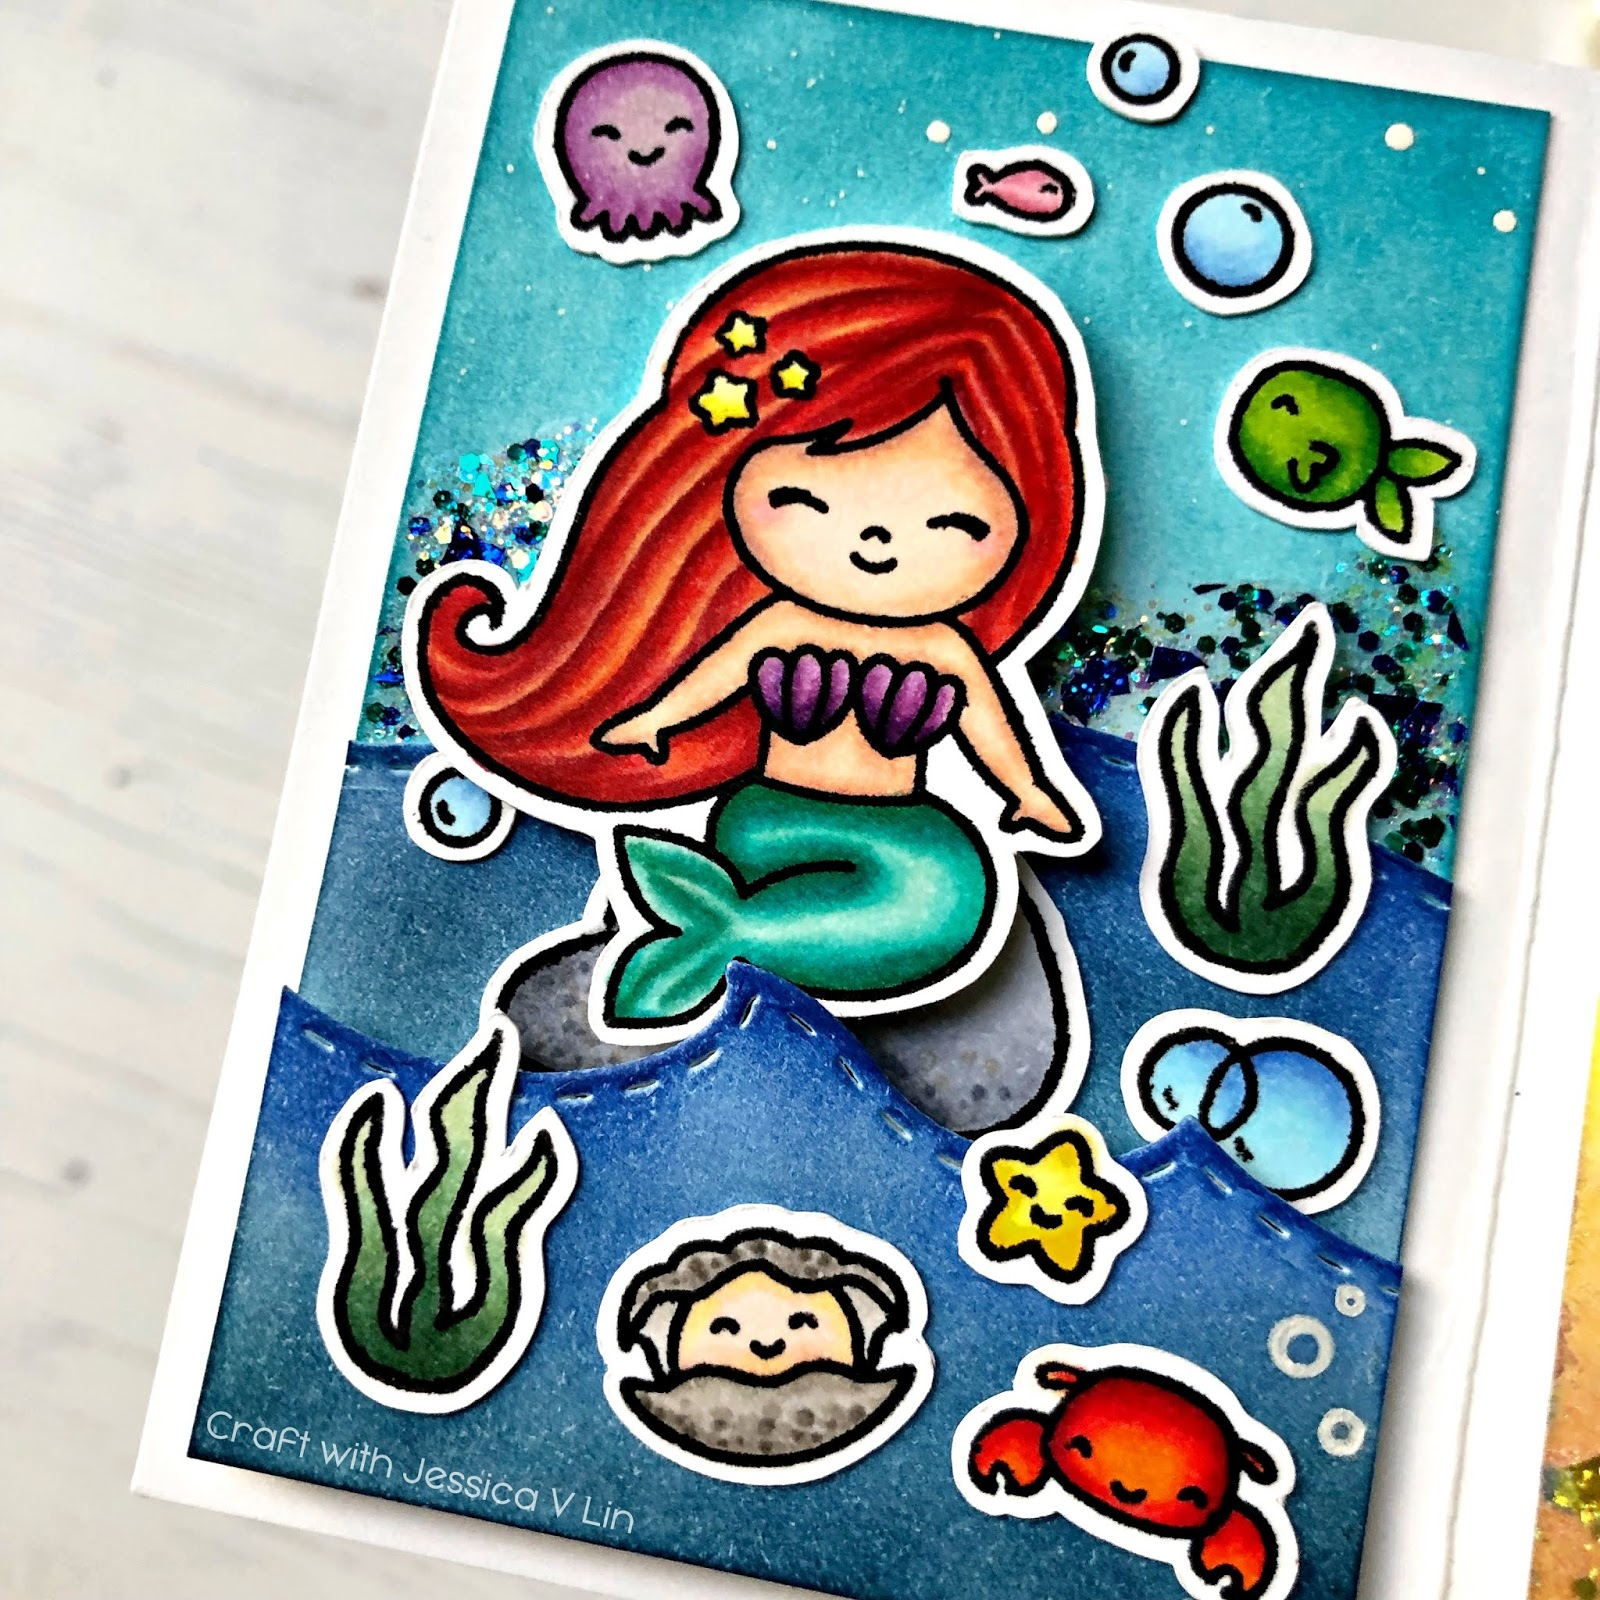 Little-Mermaid-Copic-Twist-Pop-Card_WM.jpg-VersaFine Clair Memory Keeping